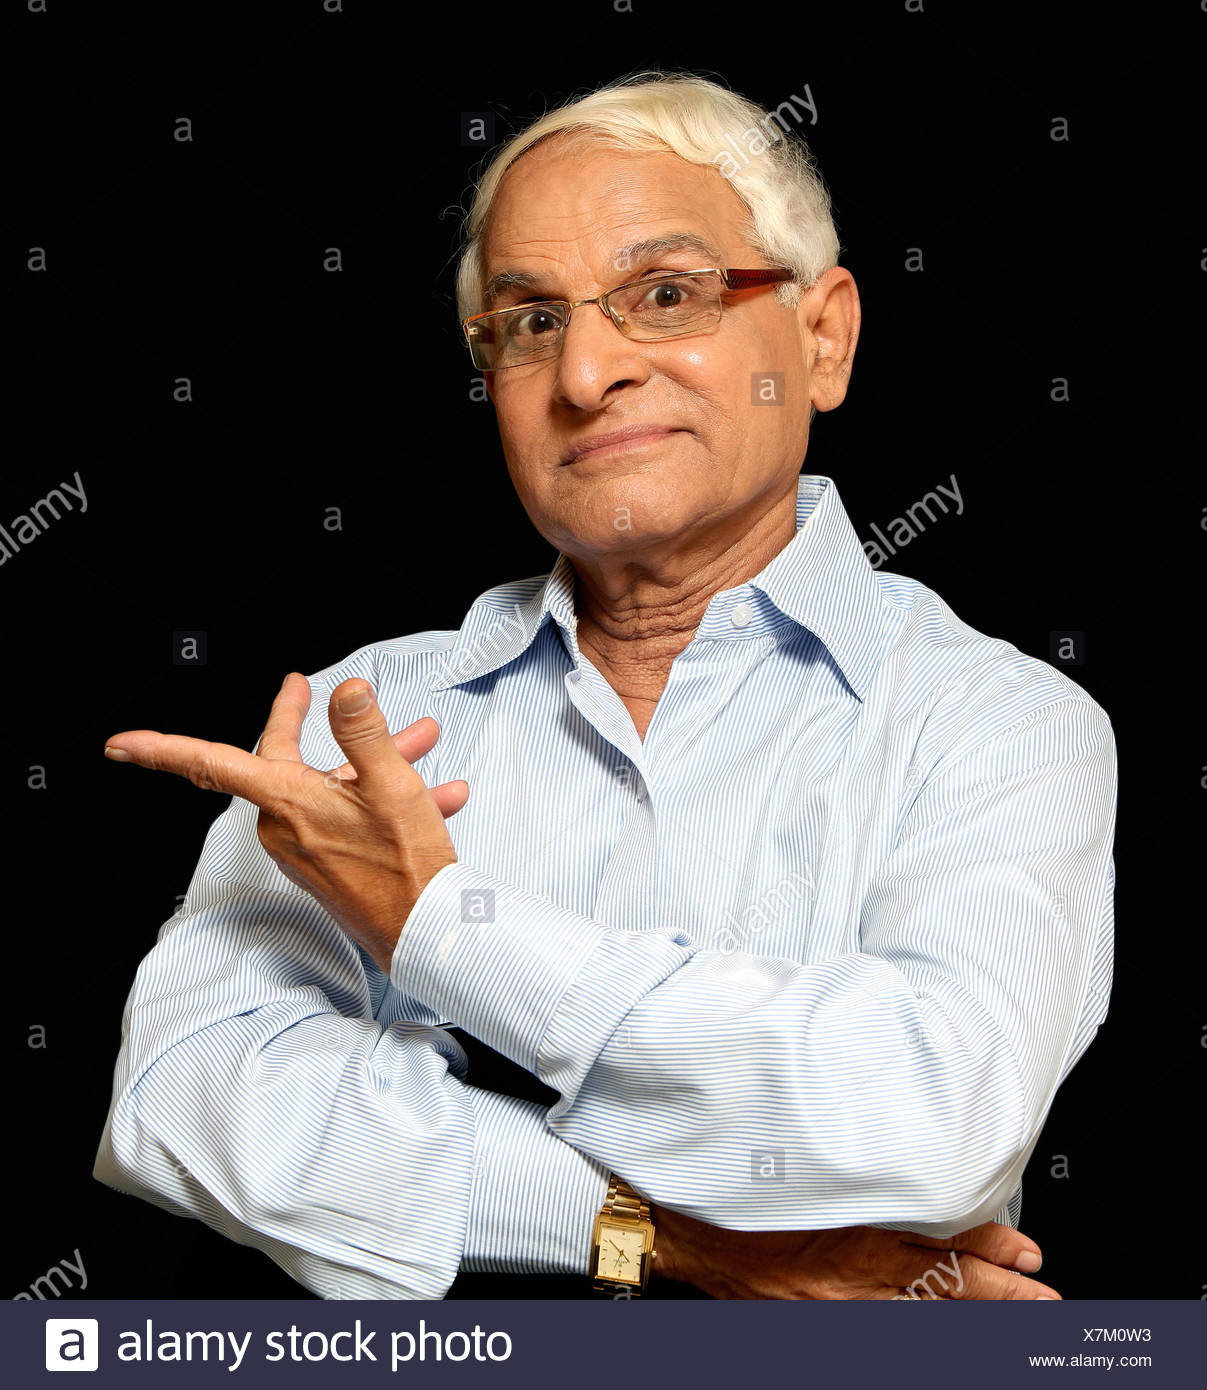 A expressing 'What was that' gesture, Pune, India - Stock Image